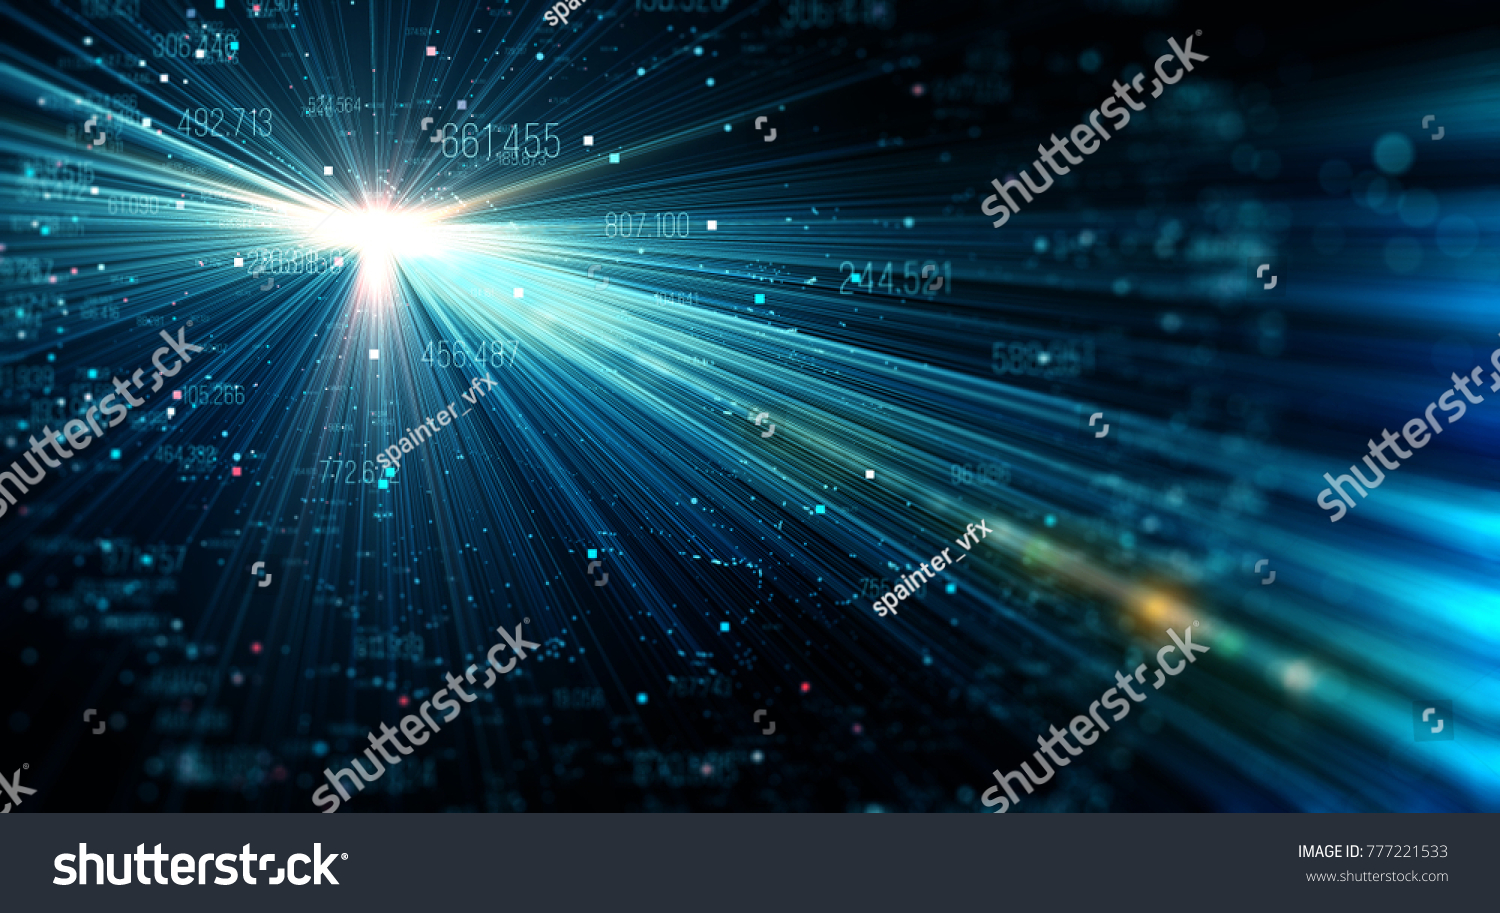 Data Transmission Channel Motion Digital Stock Illustration Circuit Board And Binary Code Vector Clipart Of Flow Transferring Big 3d